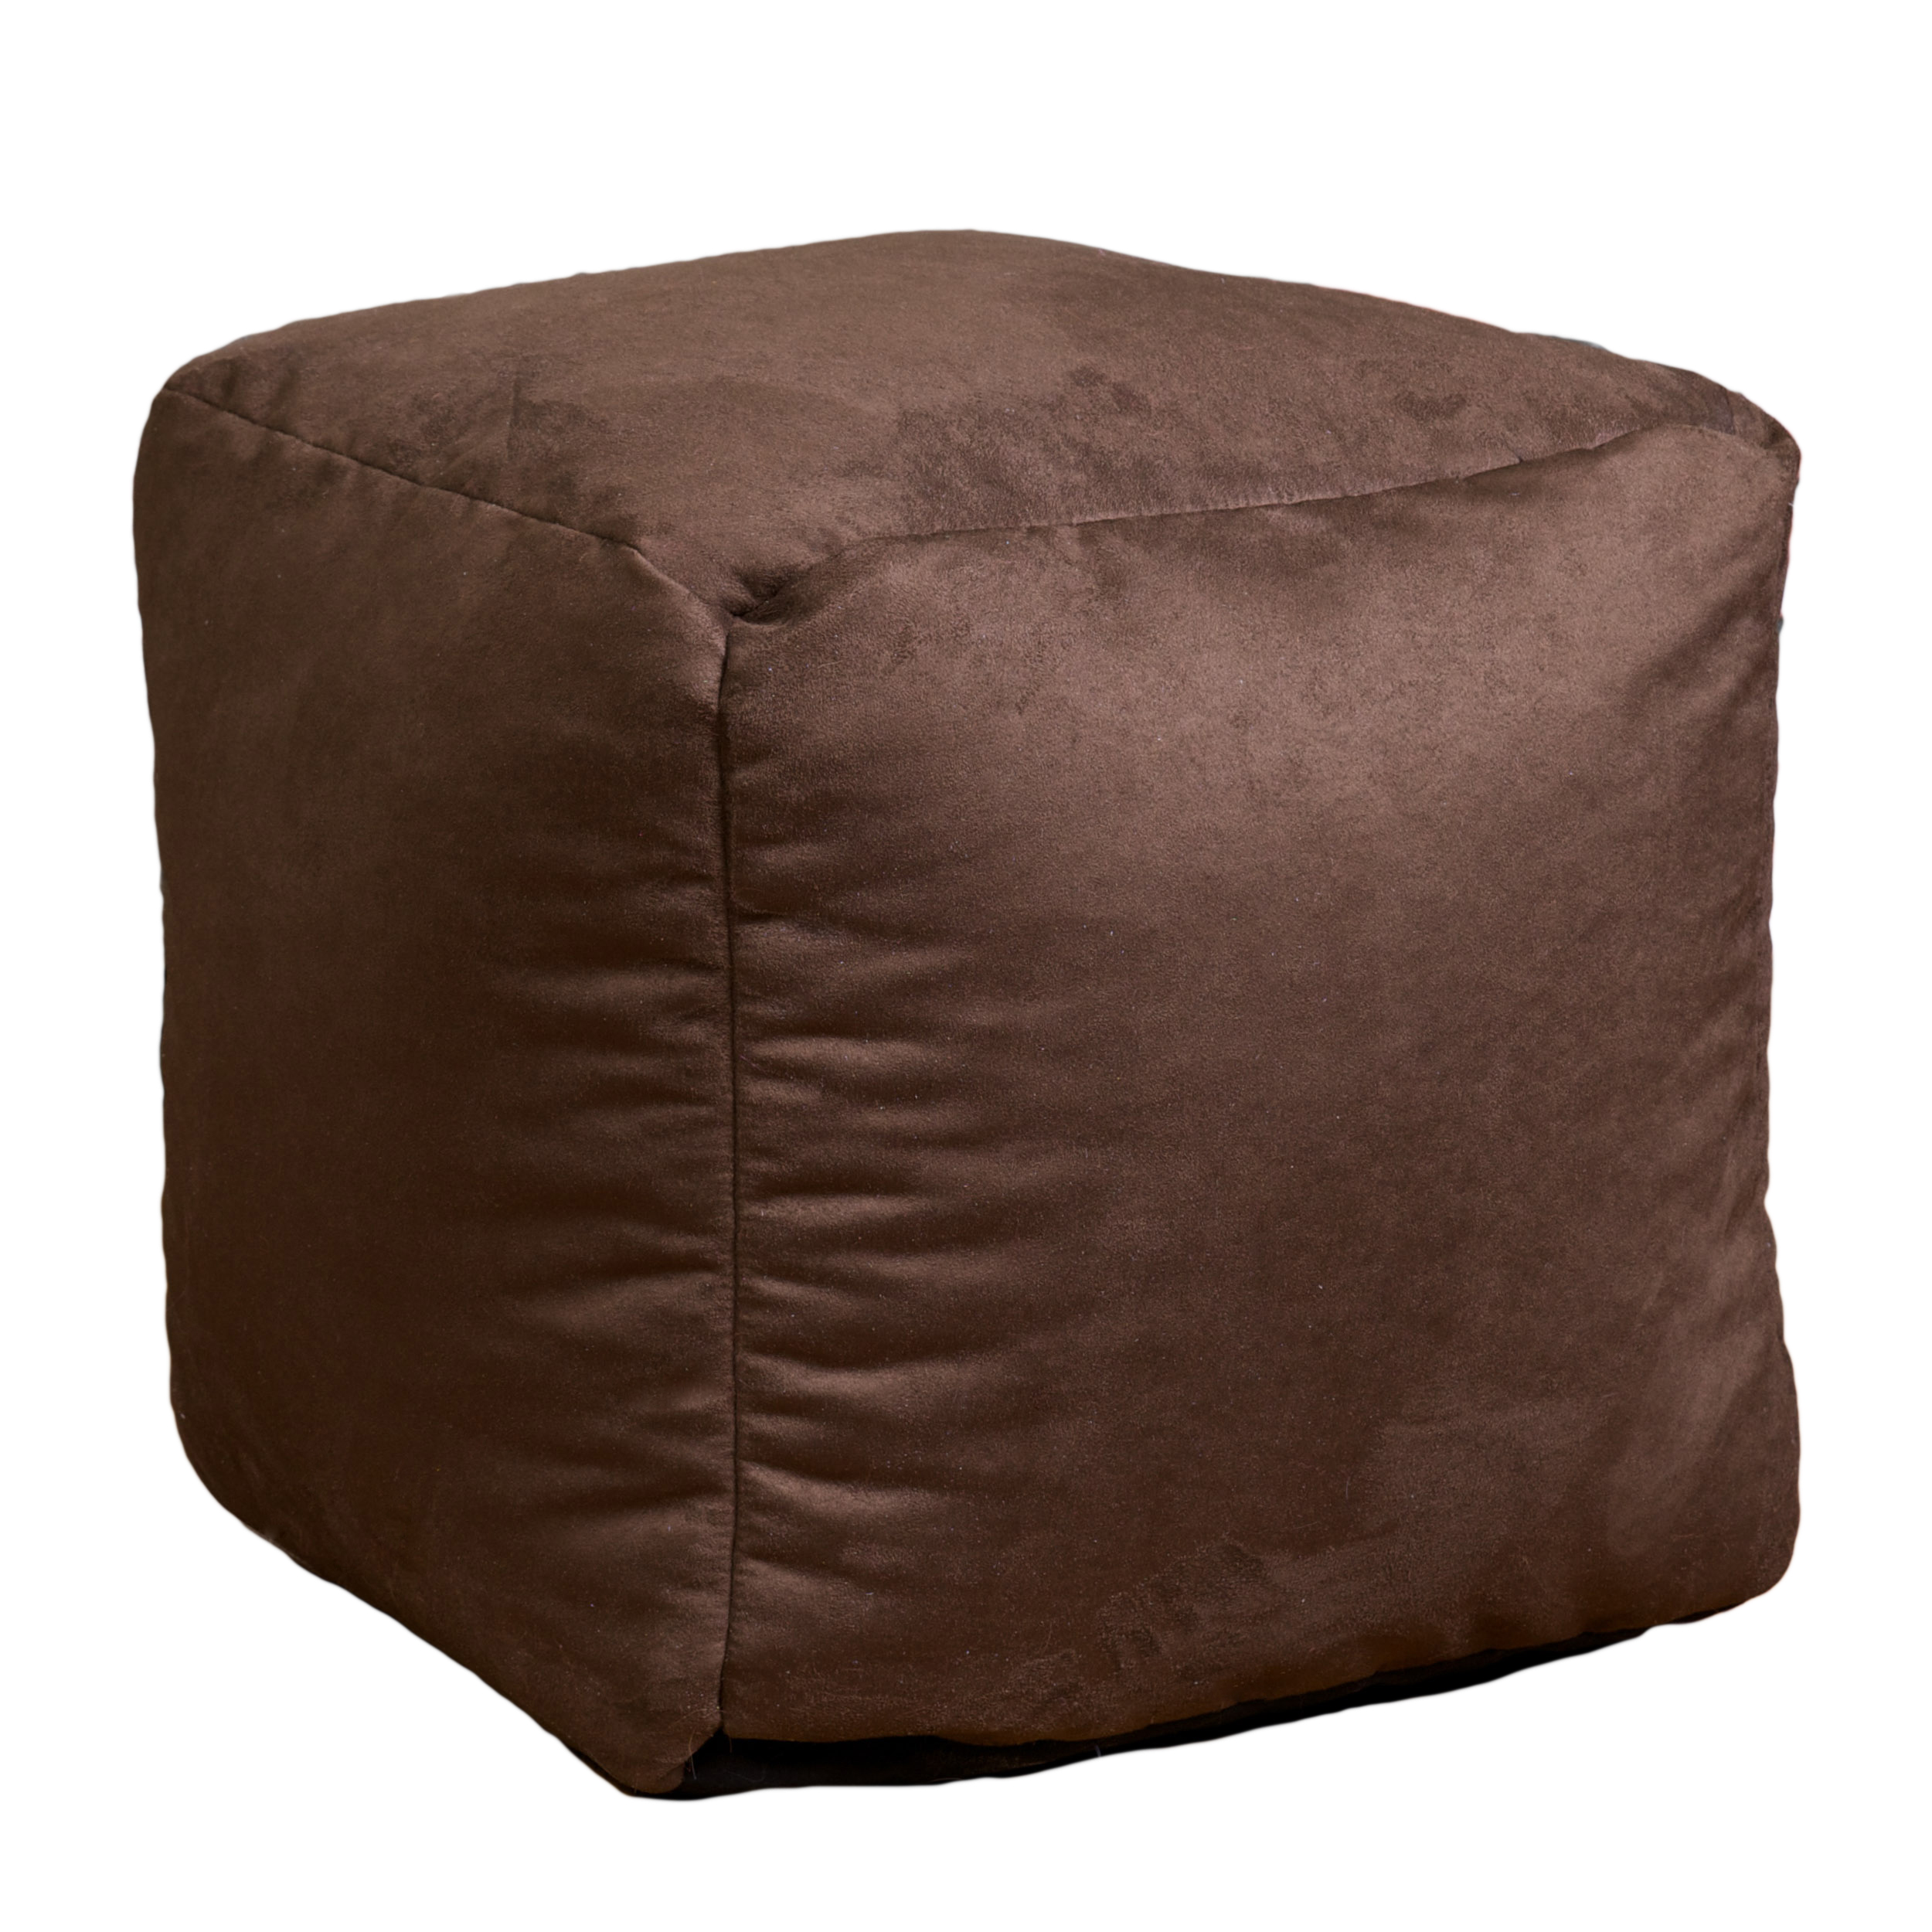 pouf loftbag poufs gants big by livedecocom with pouf loftbag cool the loft bag has made to. Black Bedroom Furniture Sets. Home Design Ideas